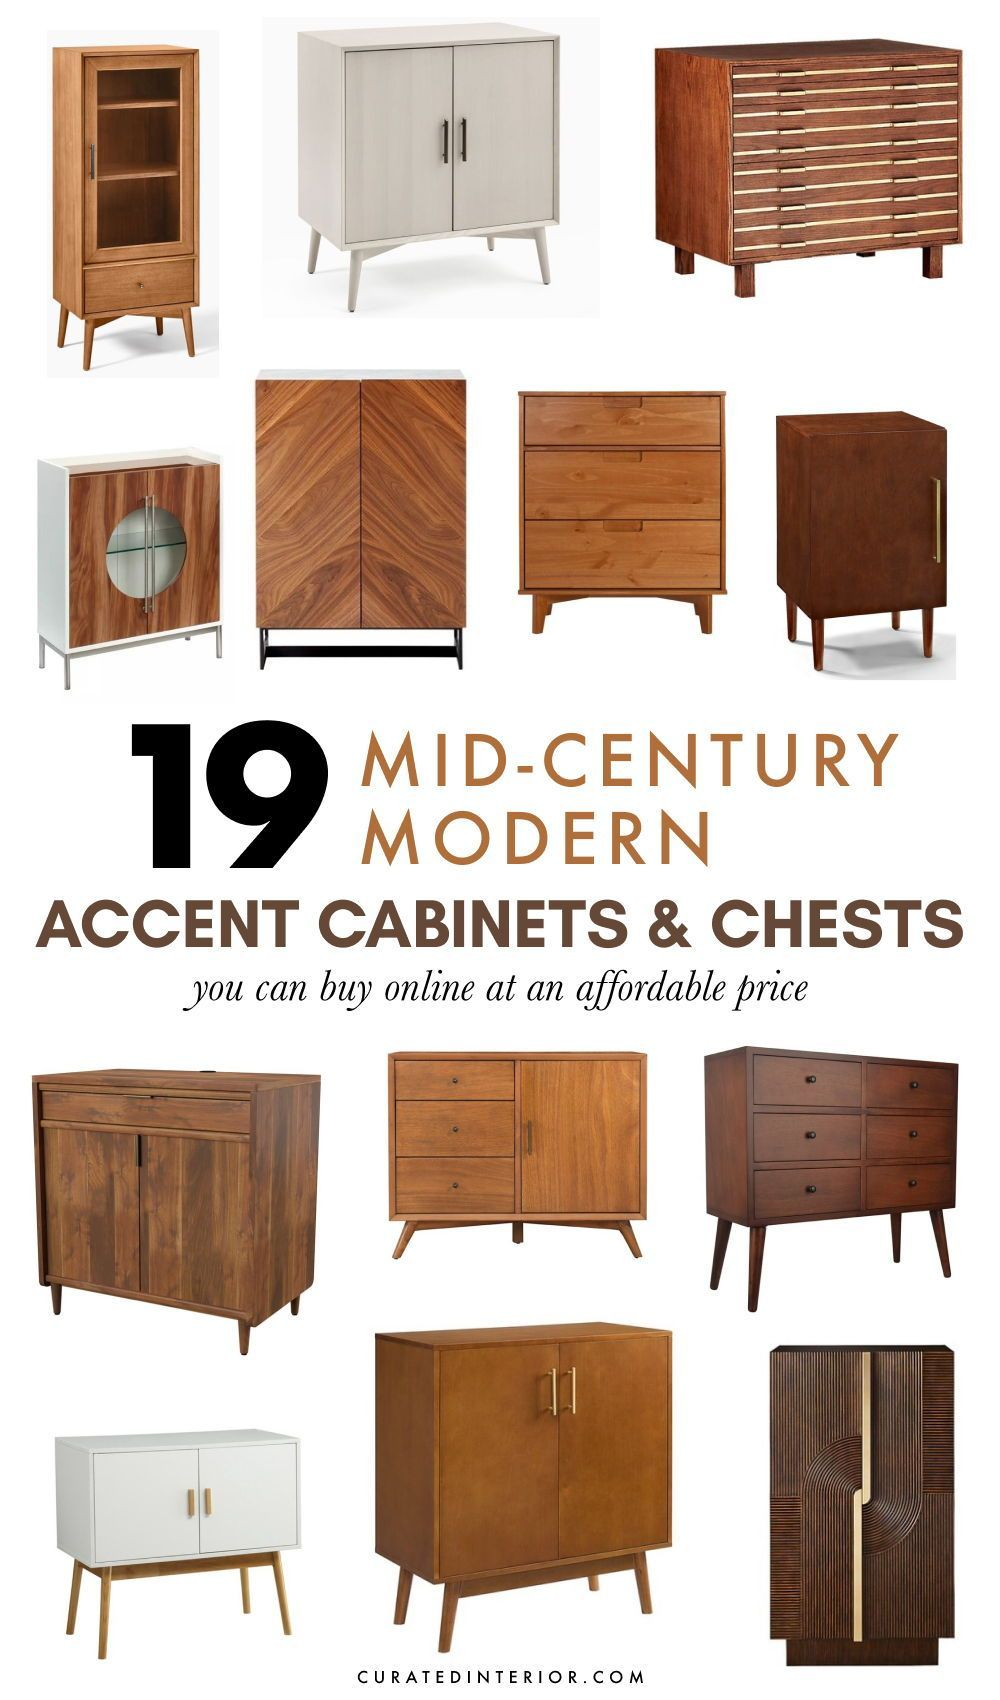 19 Mid Century Modern Accent Cabinets Chests In 2021 Mid Century Interior Design Accent Cabinet Mid Century Modern Decor